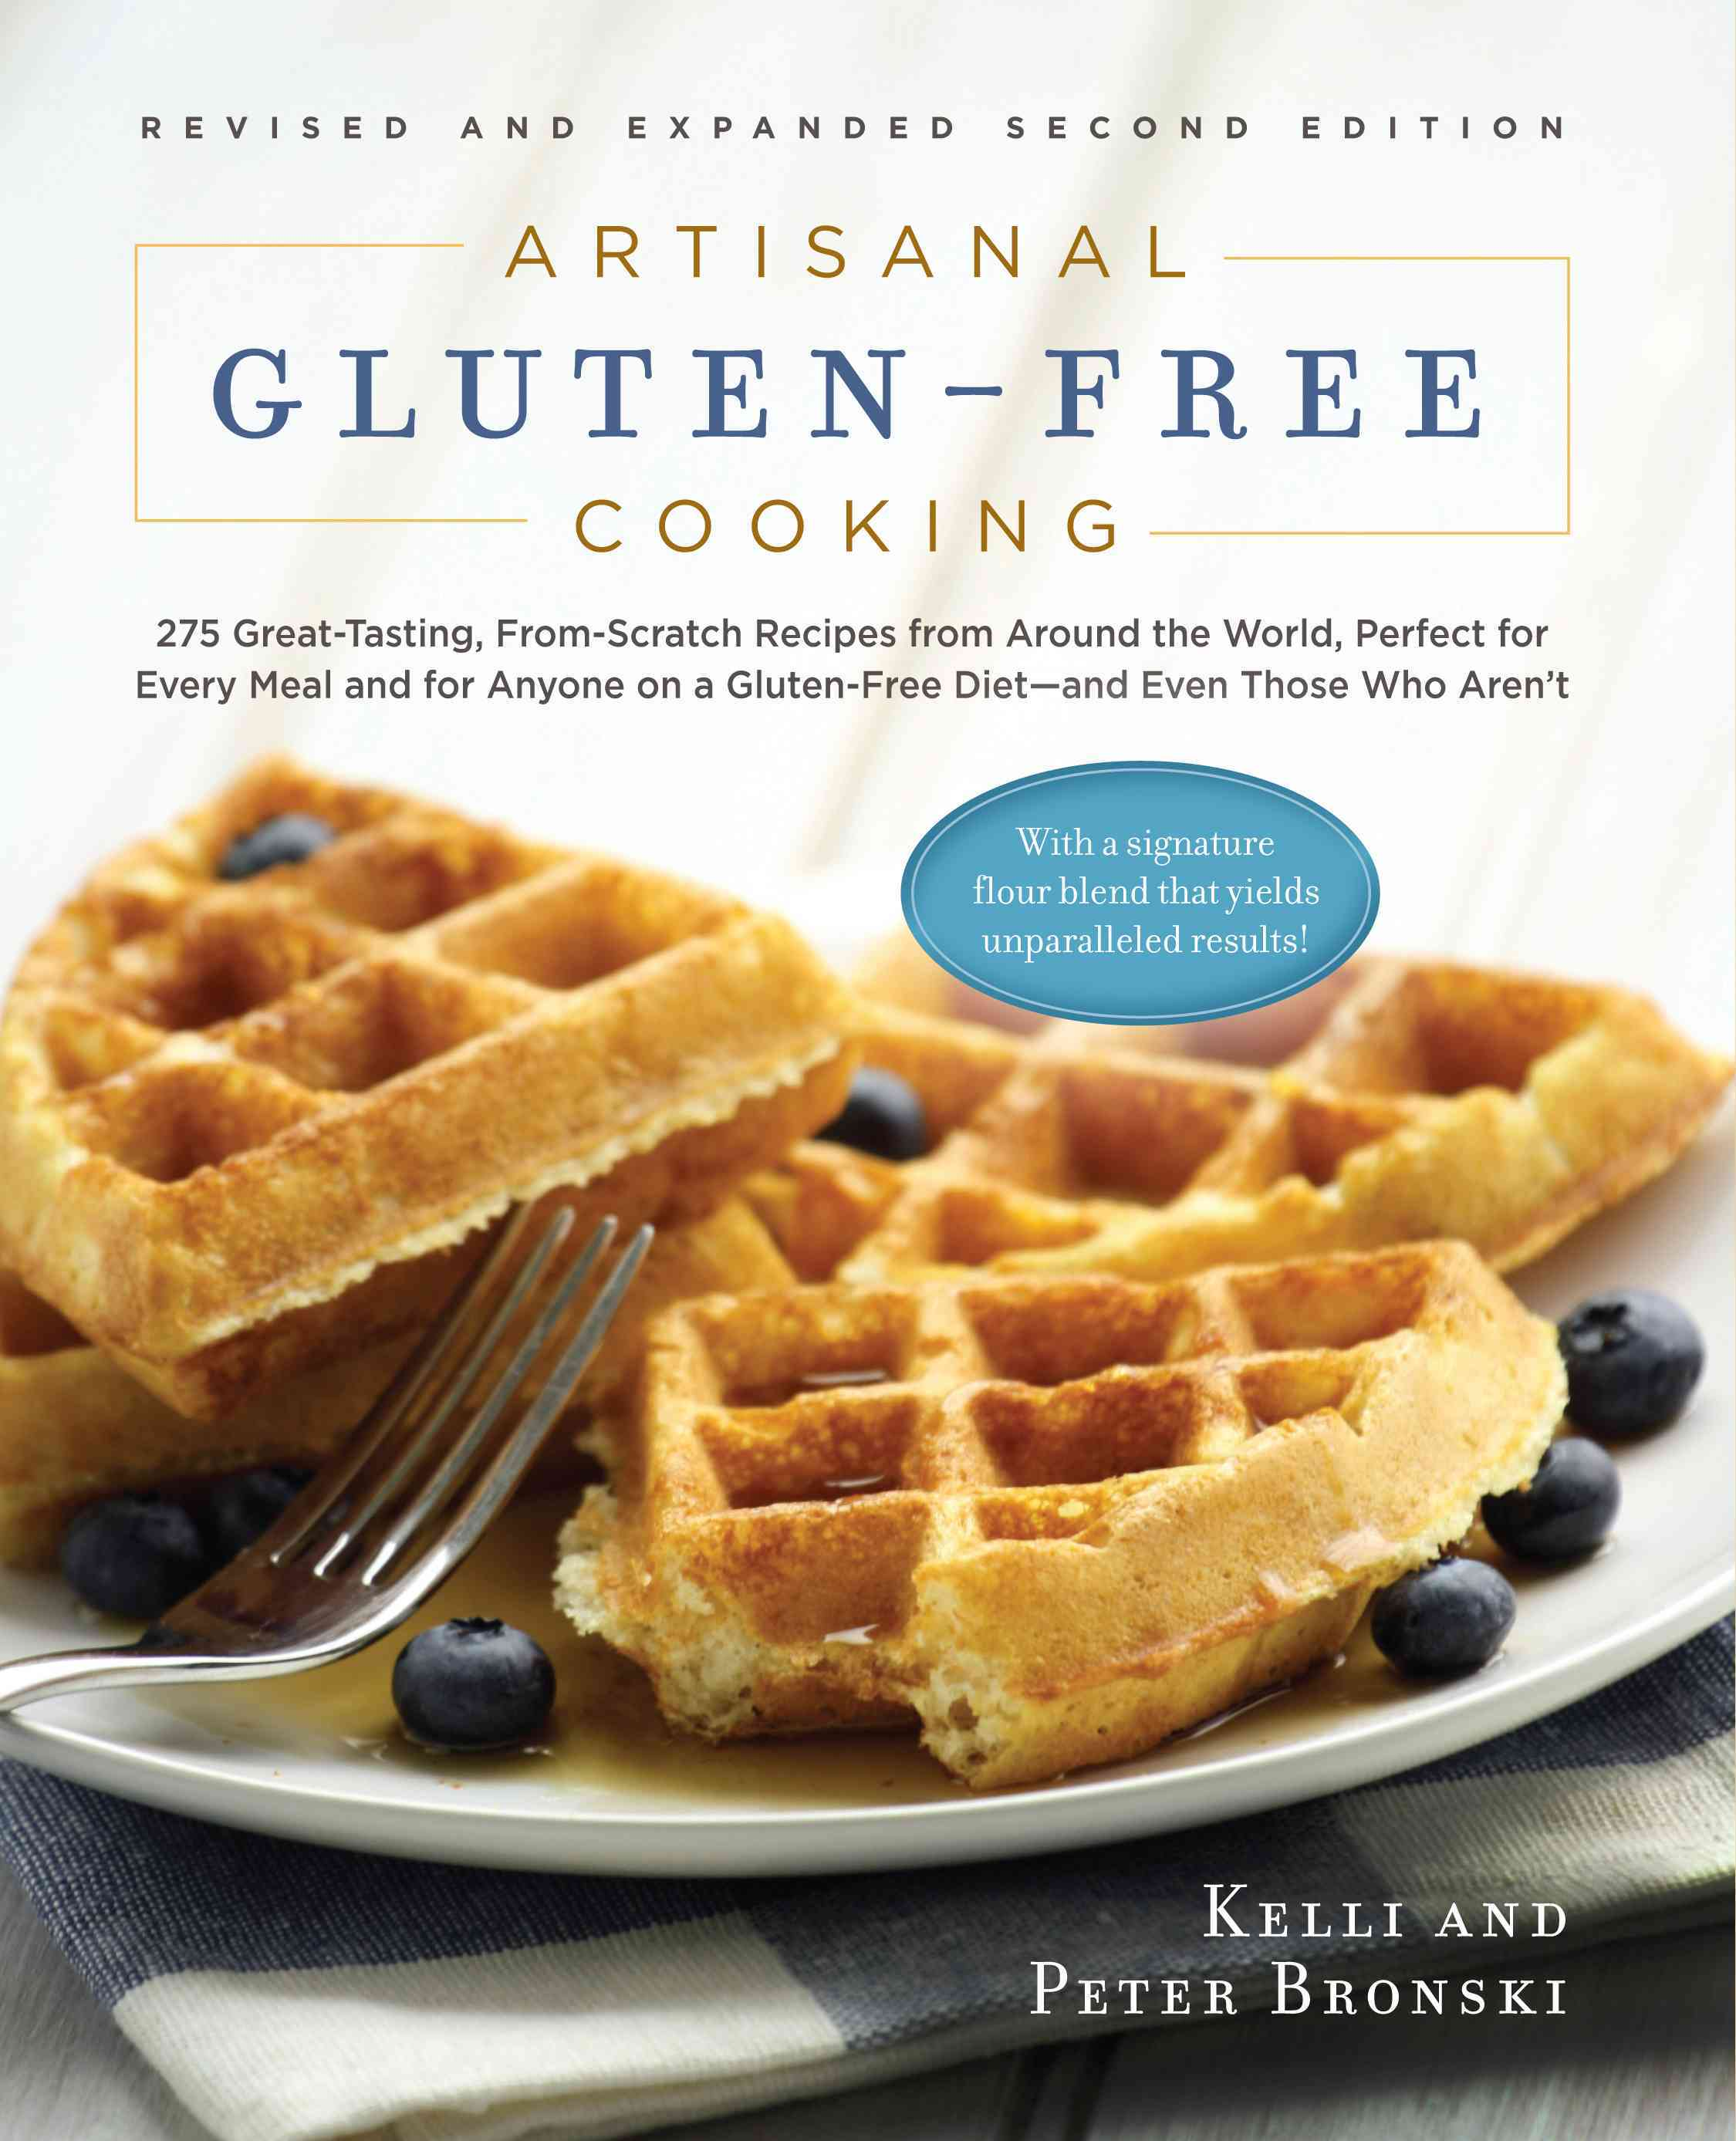 Artisanal Gluten-Free Cooking: 275 Great-Tasting, From-Scratch Recipes from Around the World, Perfect for Every M... (Paperback)